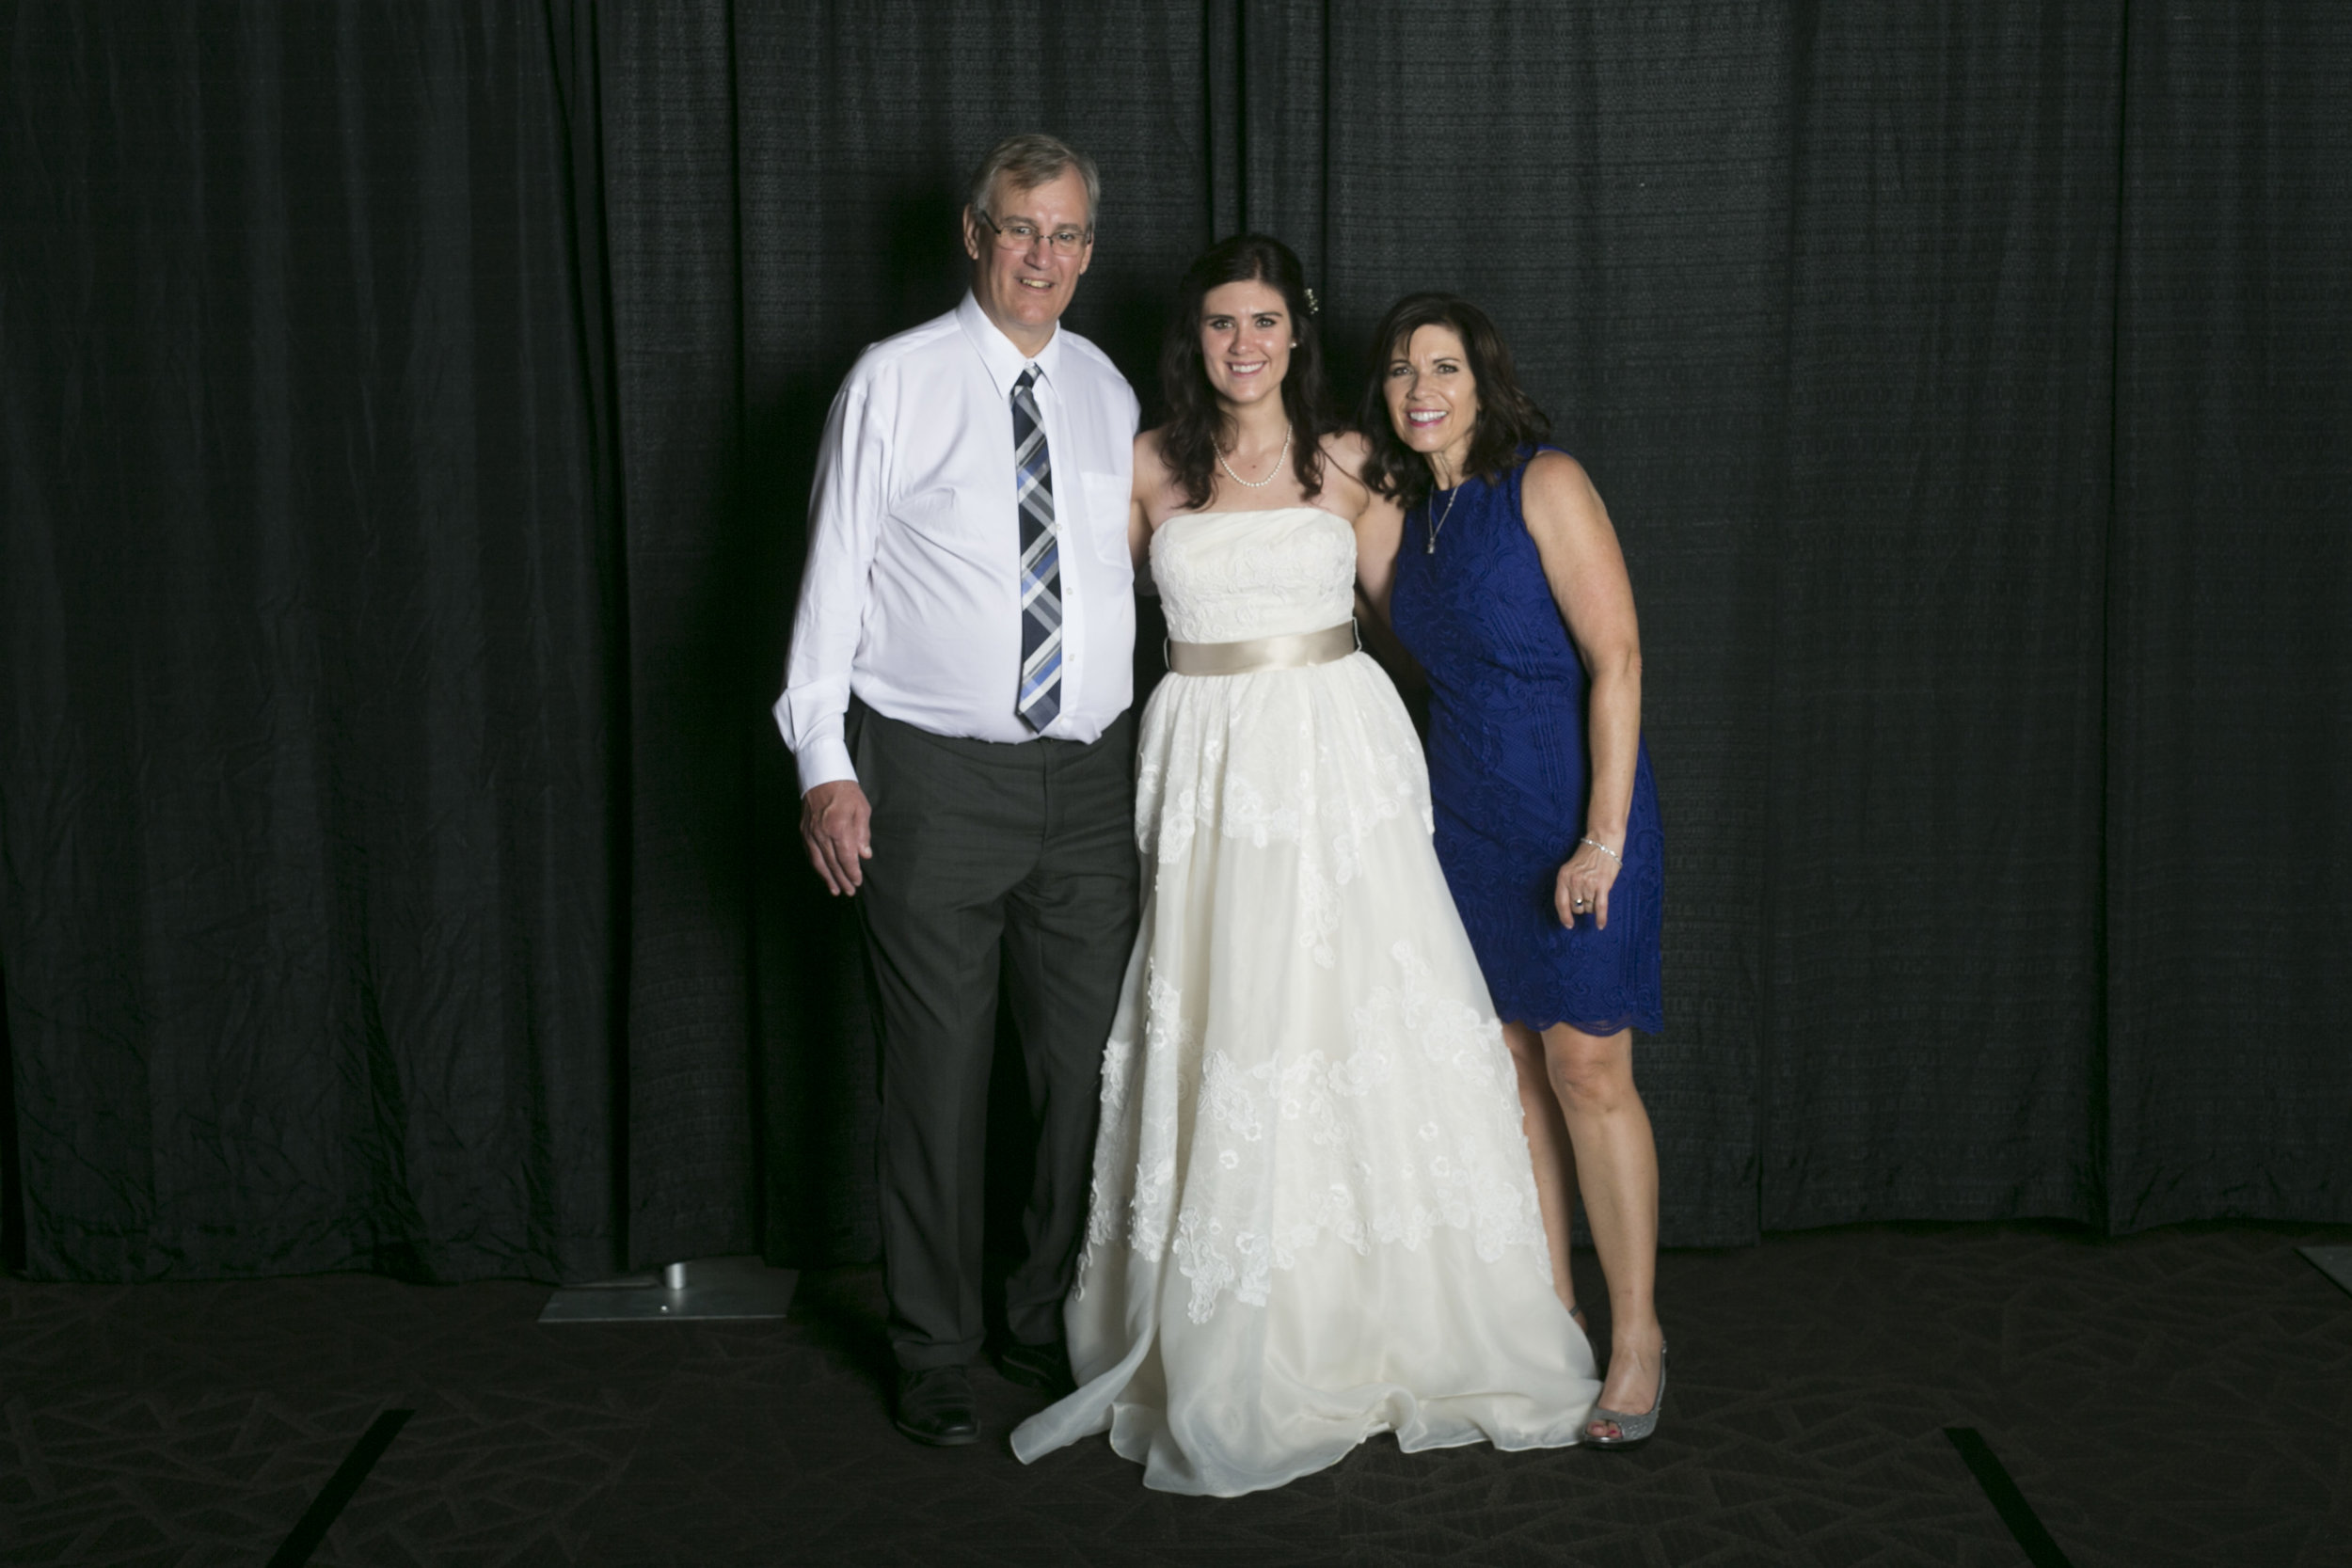 wedding photo booth-120.jpg